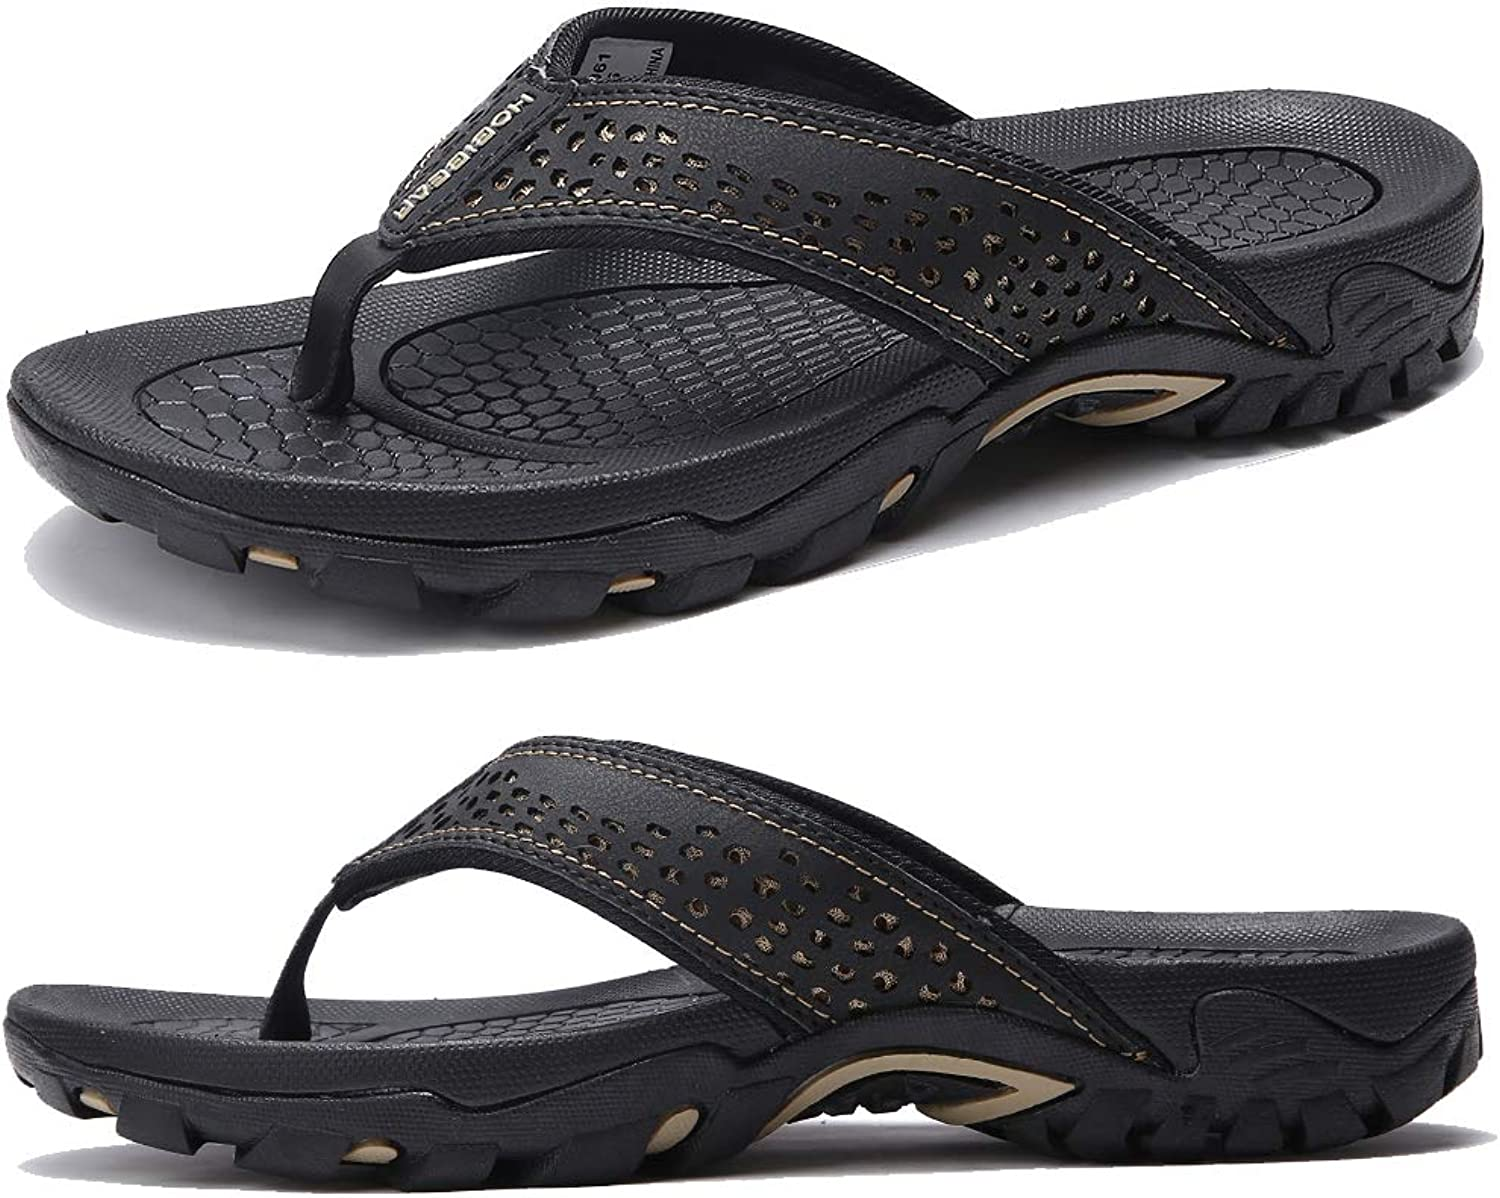 KIIU Mens Flip Flop Indoor and Outdoor Thong Sandals Beach Slippers Black, 41